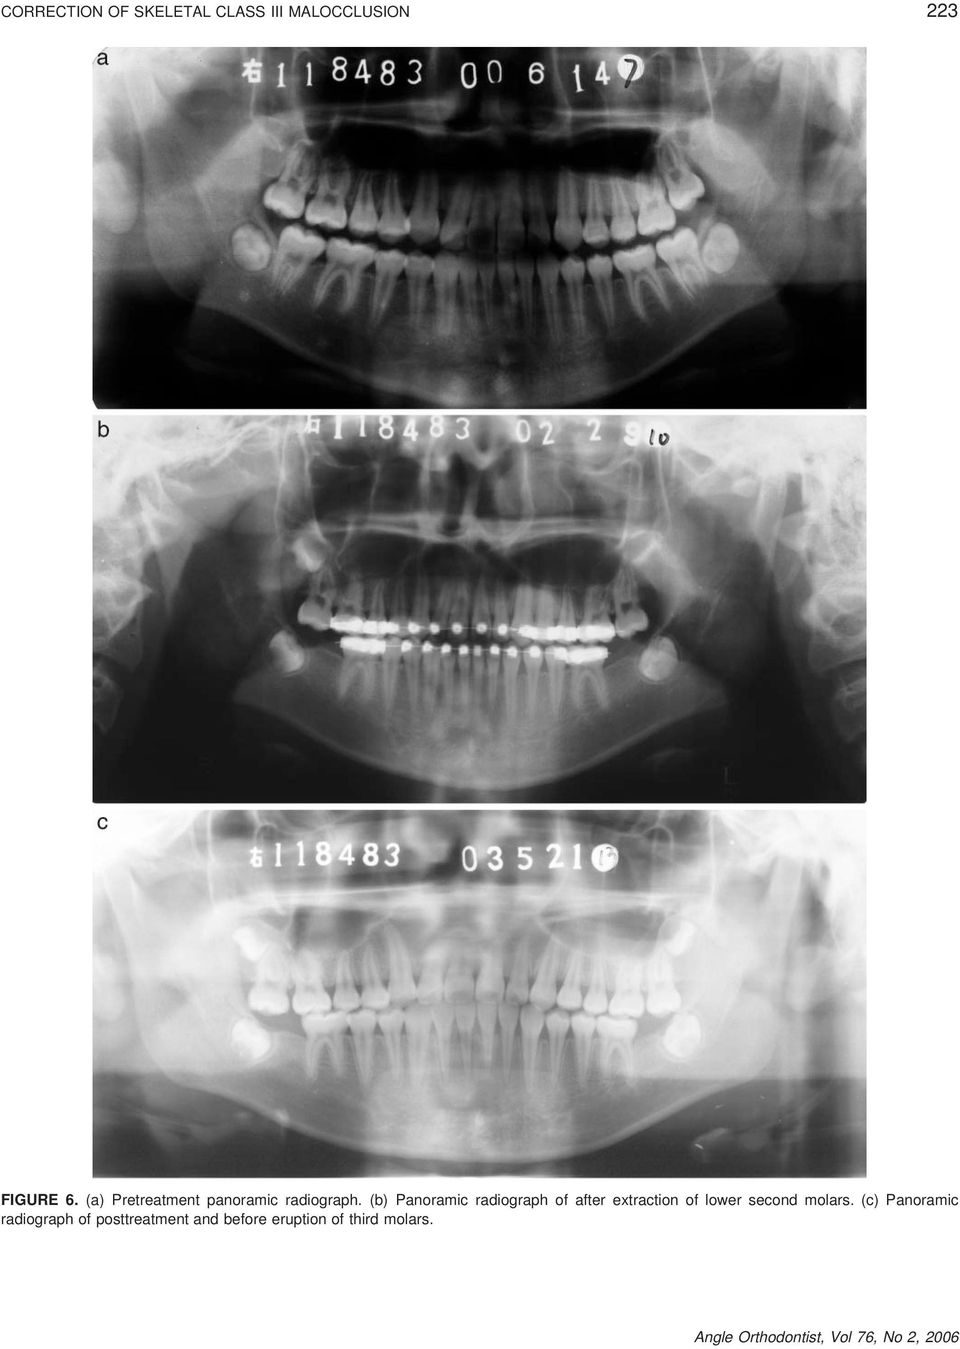 (b) Panoramic radiograph of after extraction of lower second